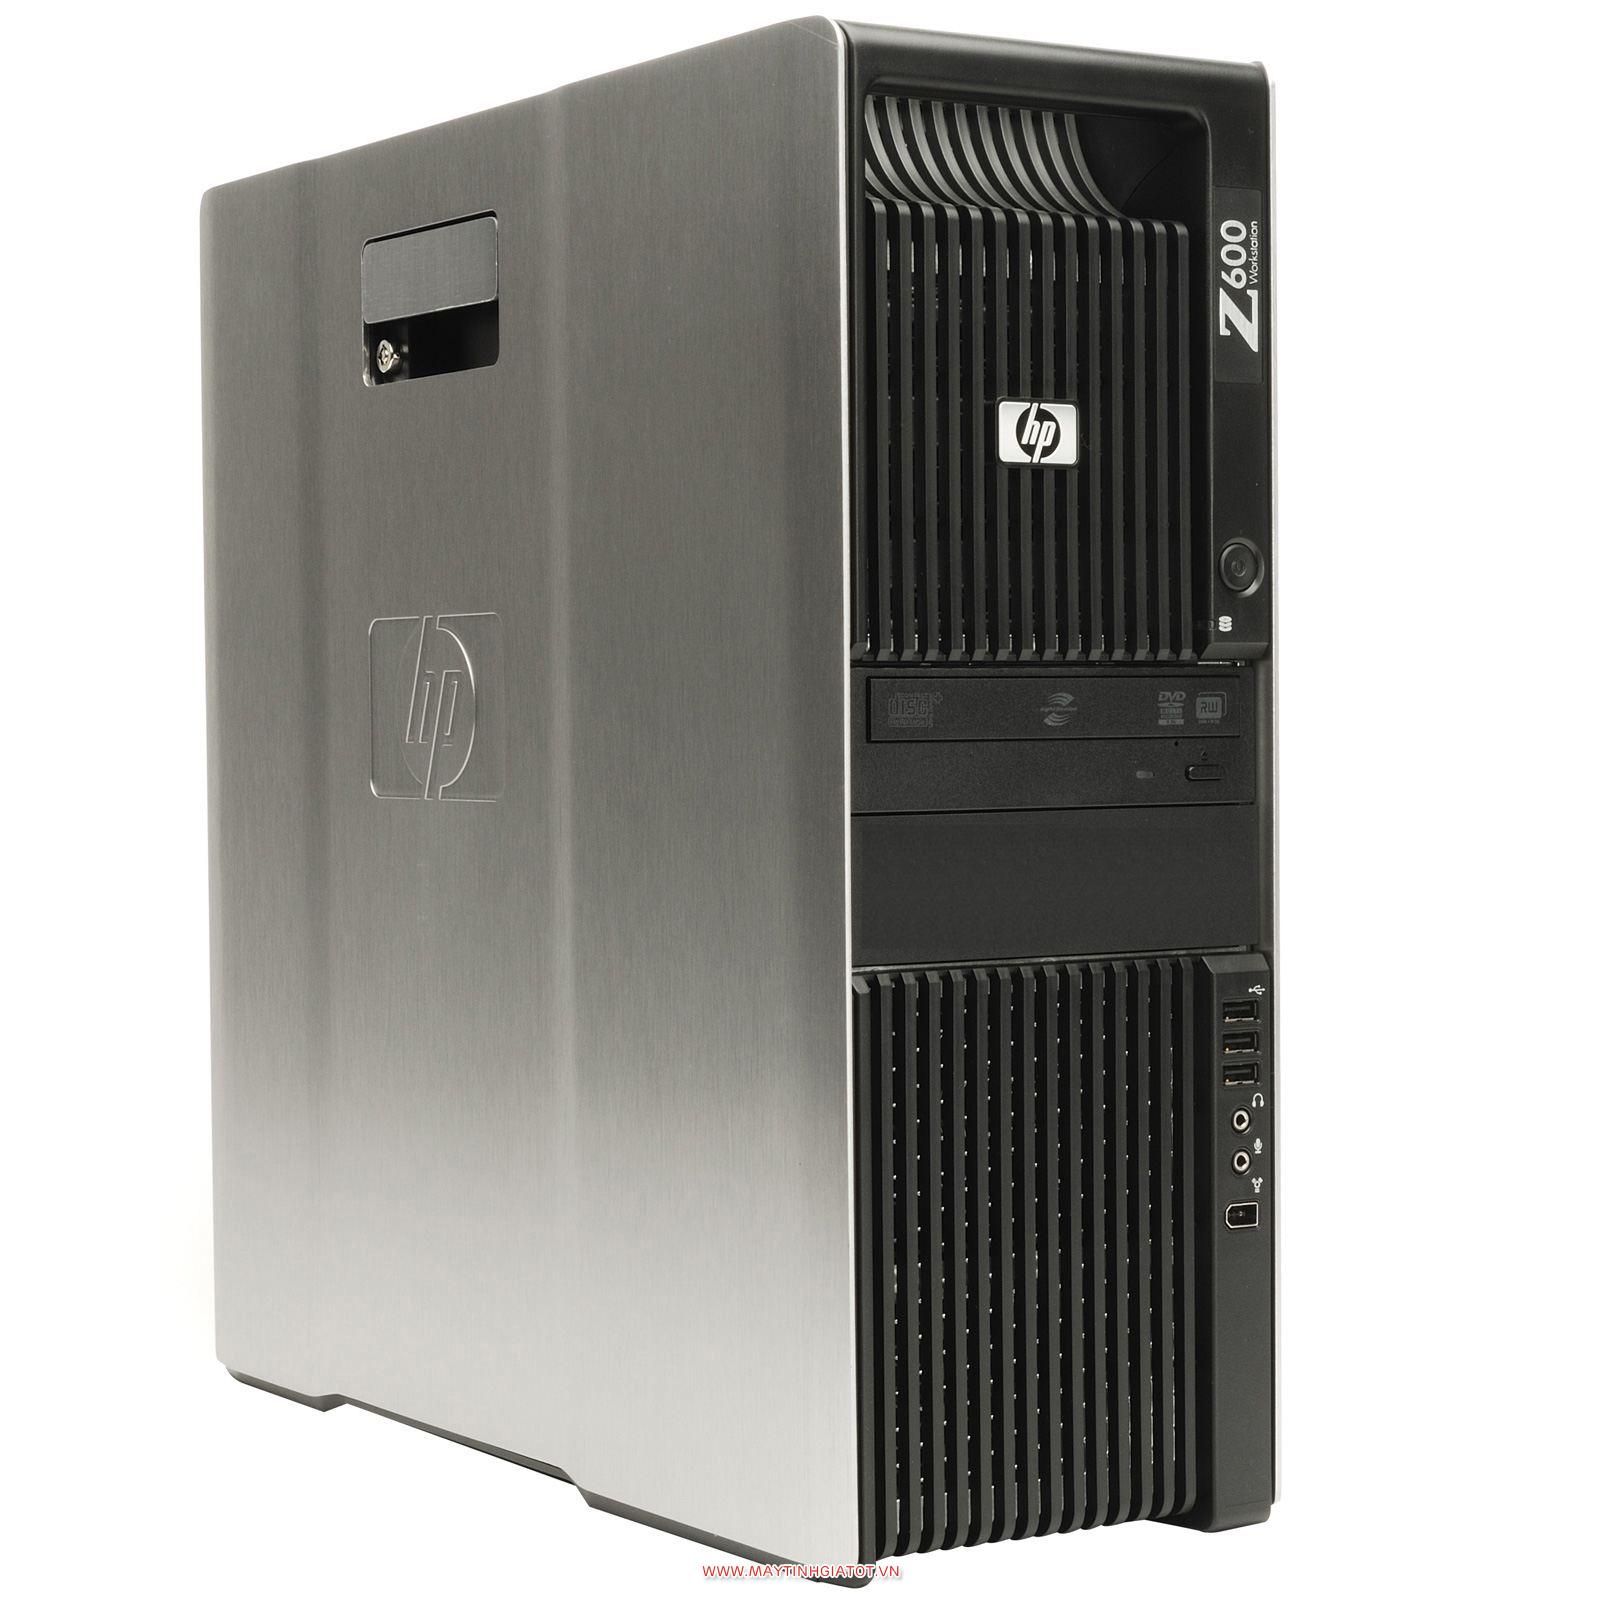 CẤU HÌNH WOKSTATION HP Z600 DUAL XEON X5650 (24 THREADS), RAM 32GB / QUADRO 600